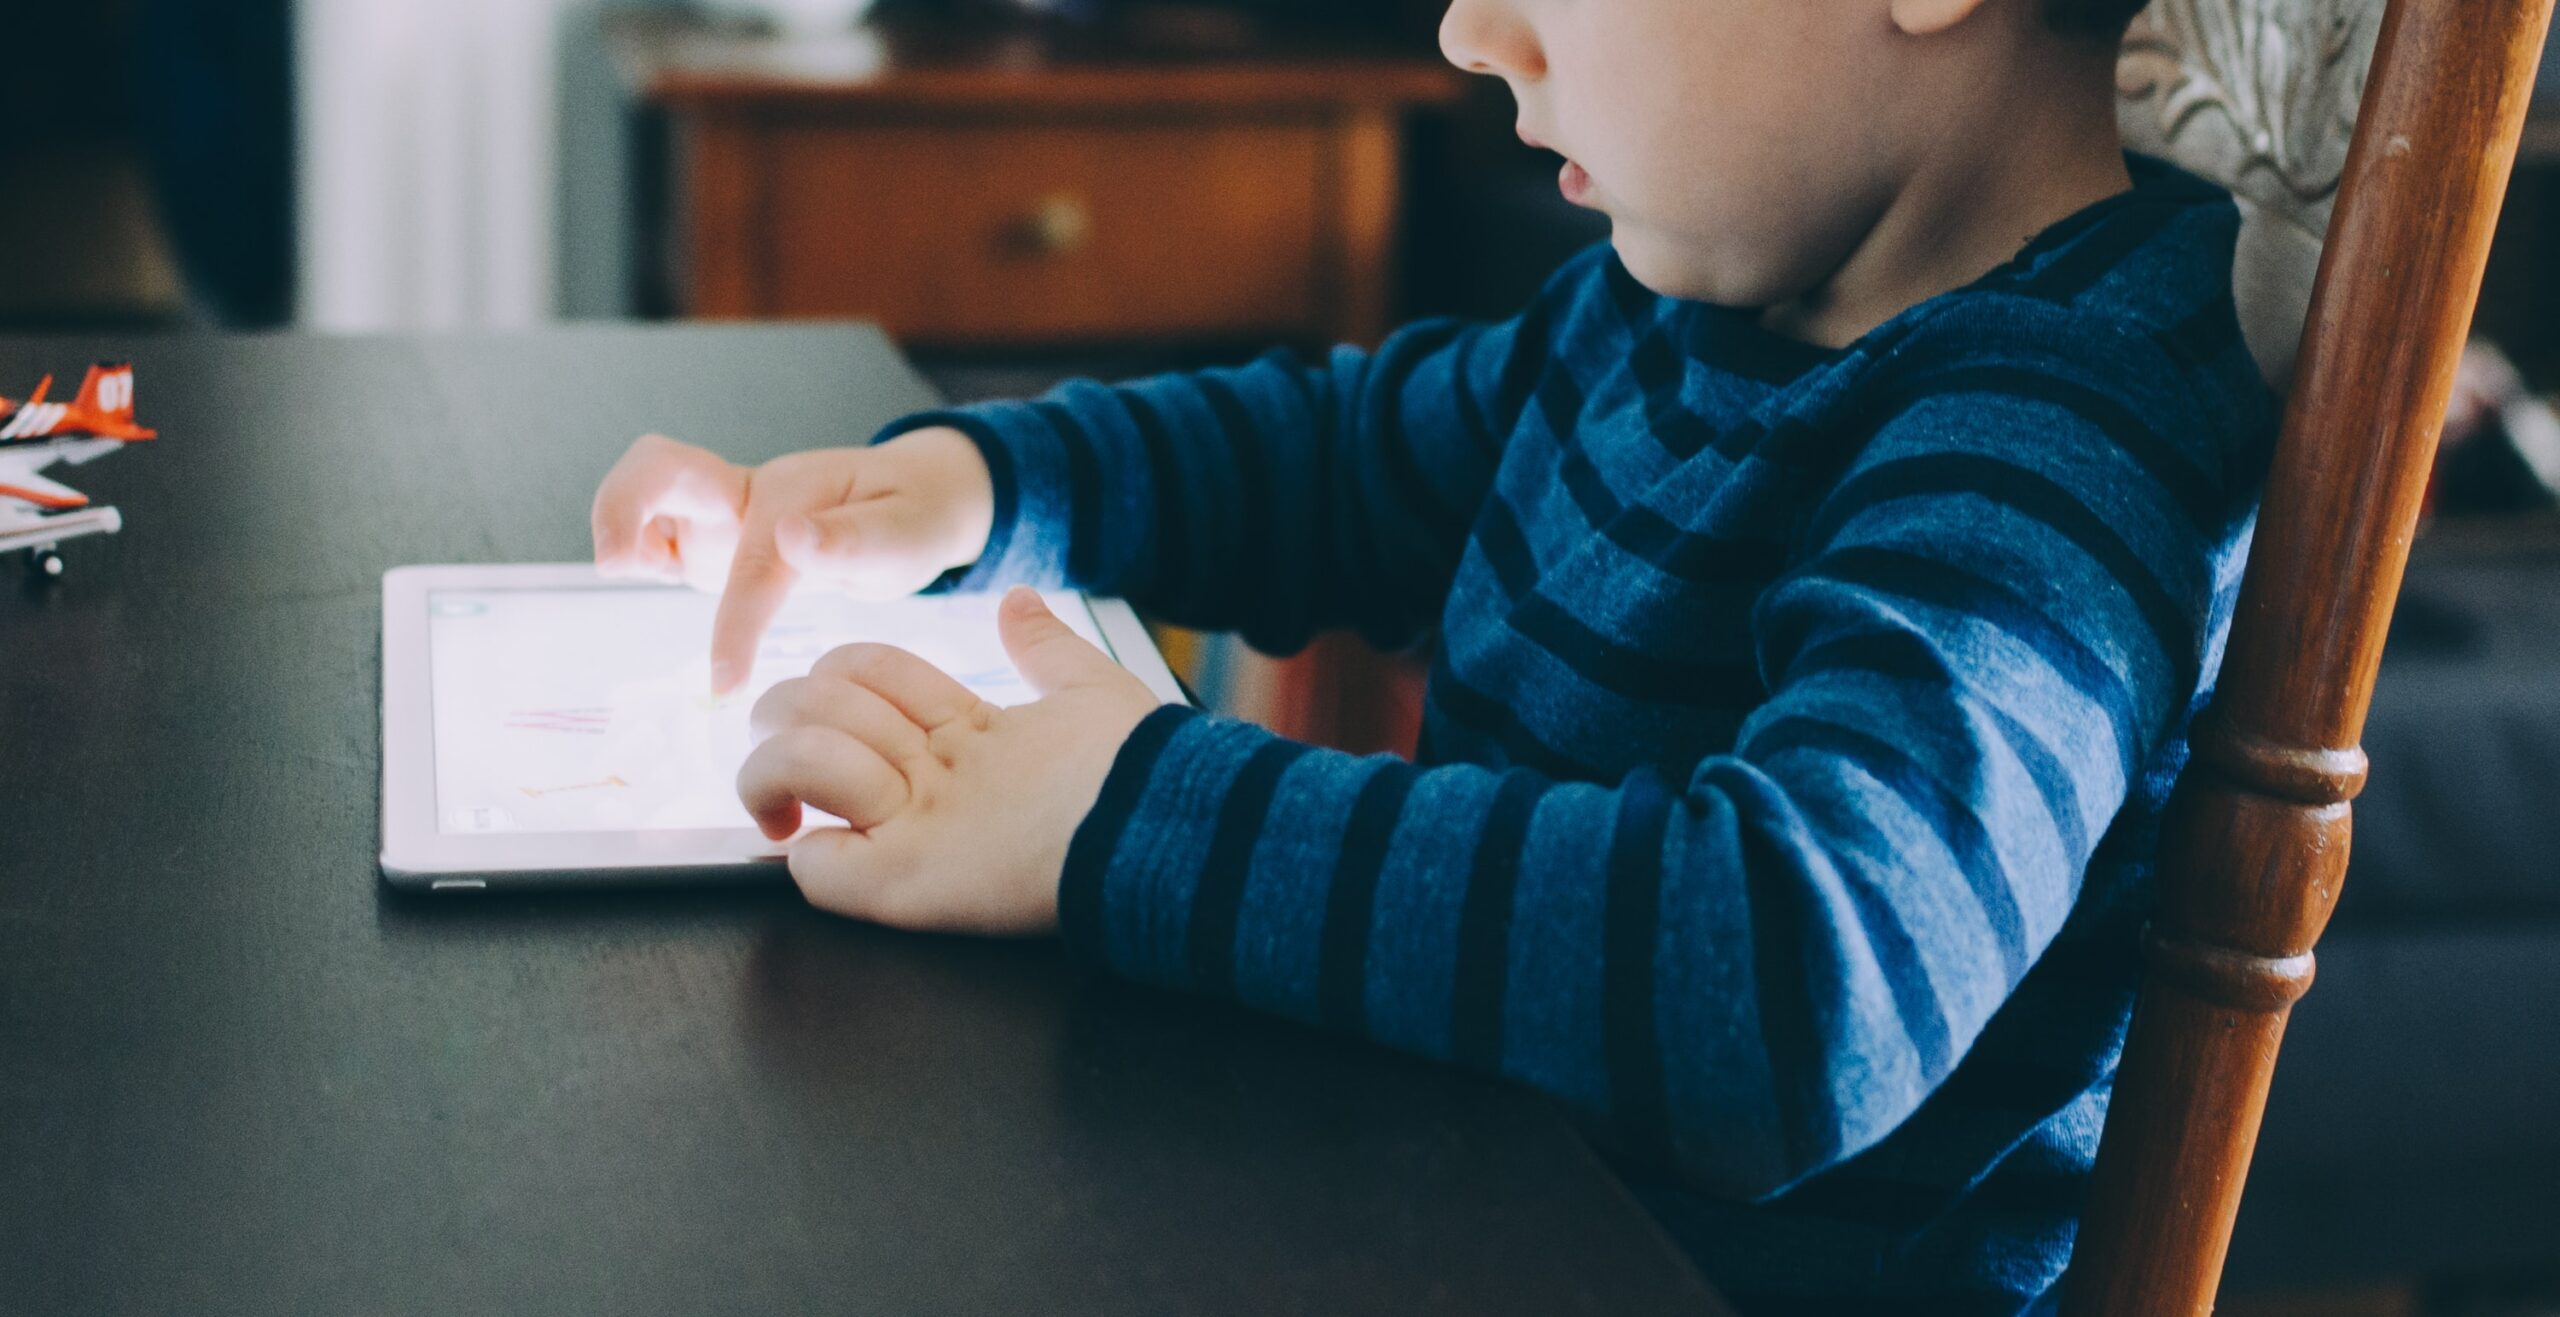 Toddler at a table with a tablet